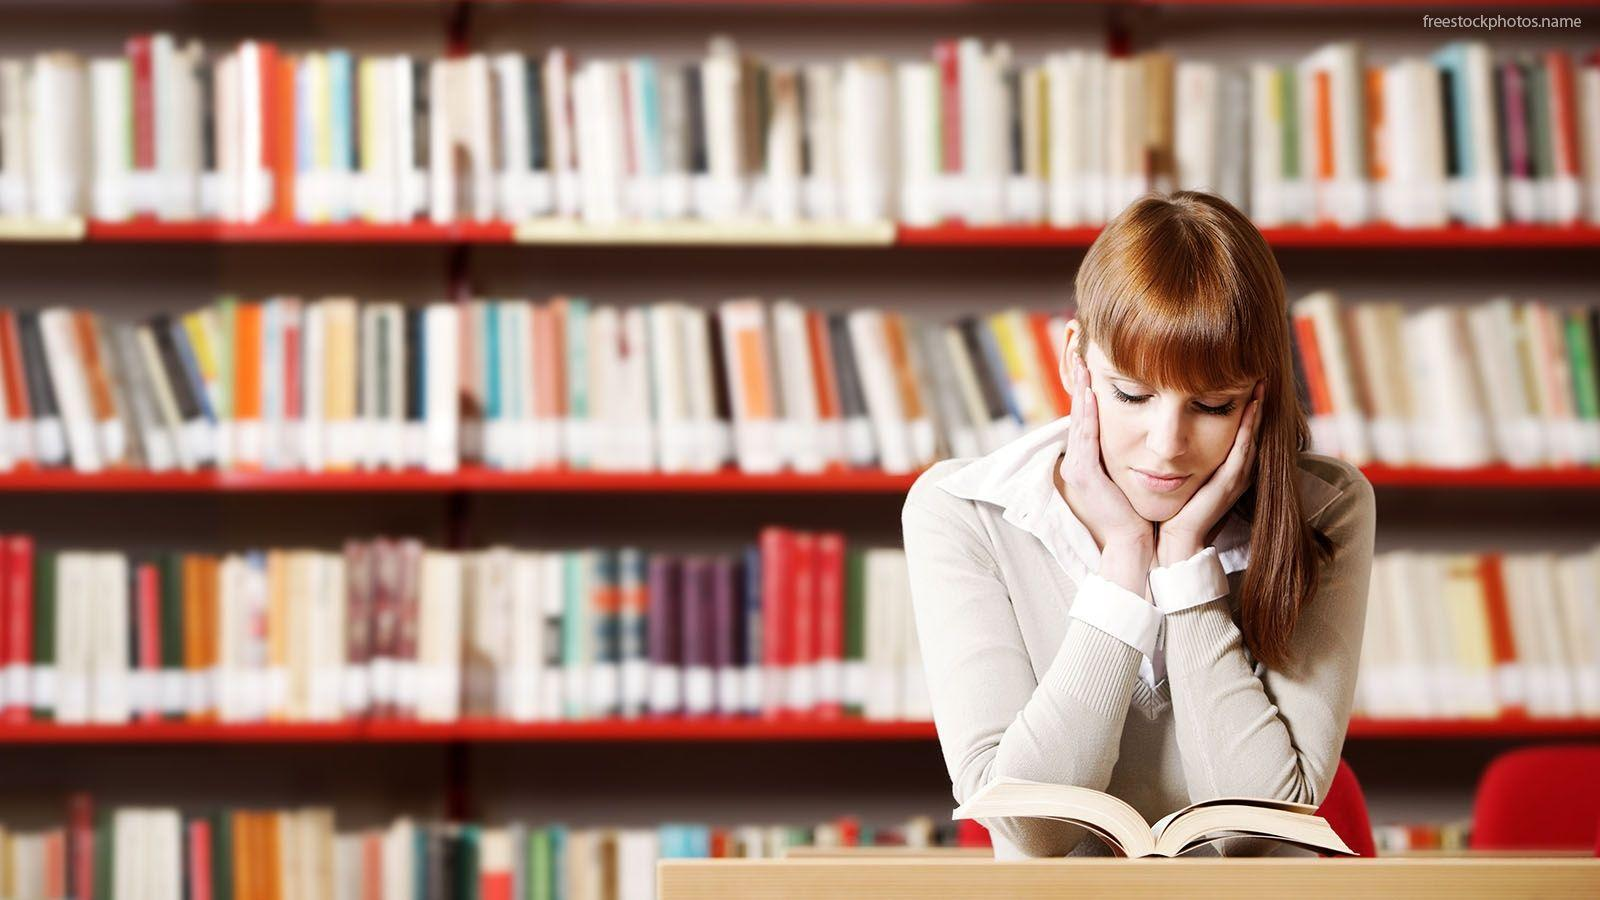 Download Stock Photos Of Student Studying In The Library Images